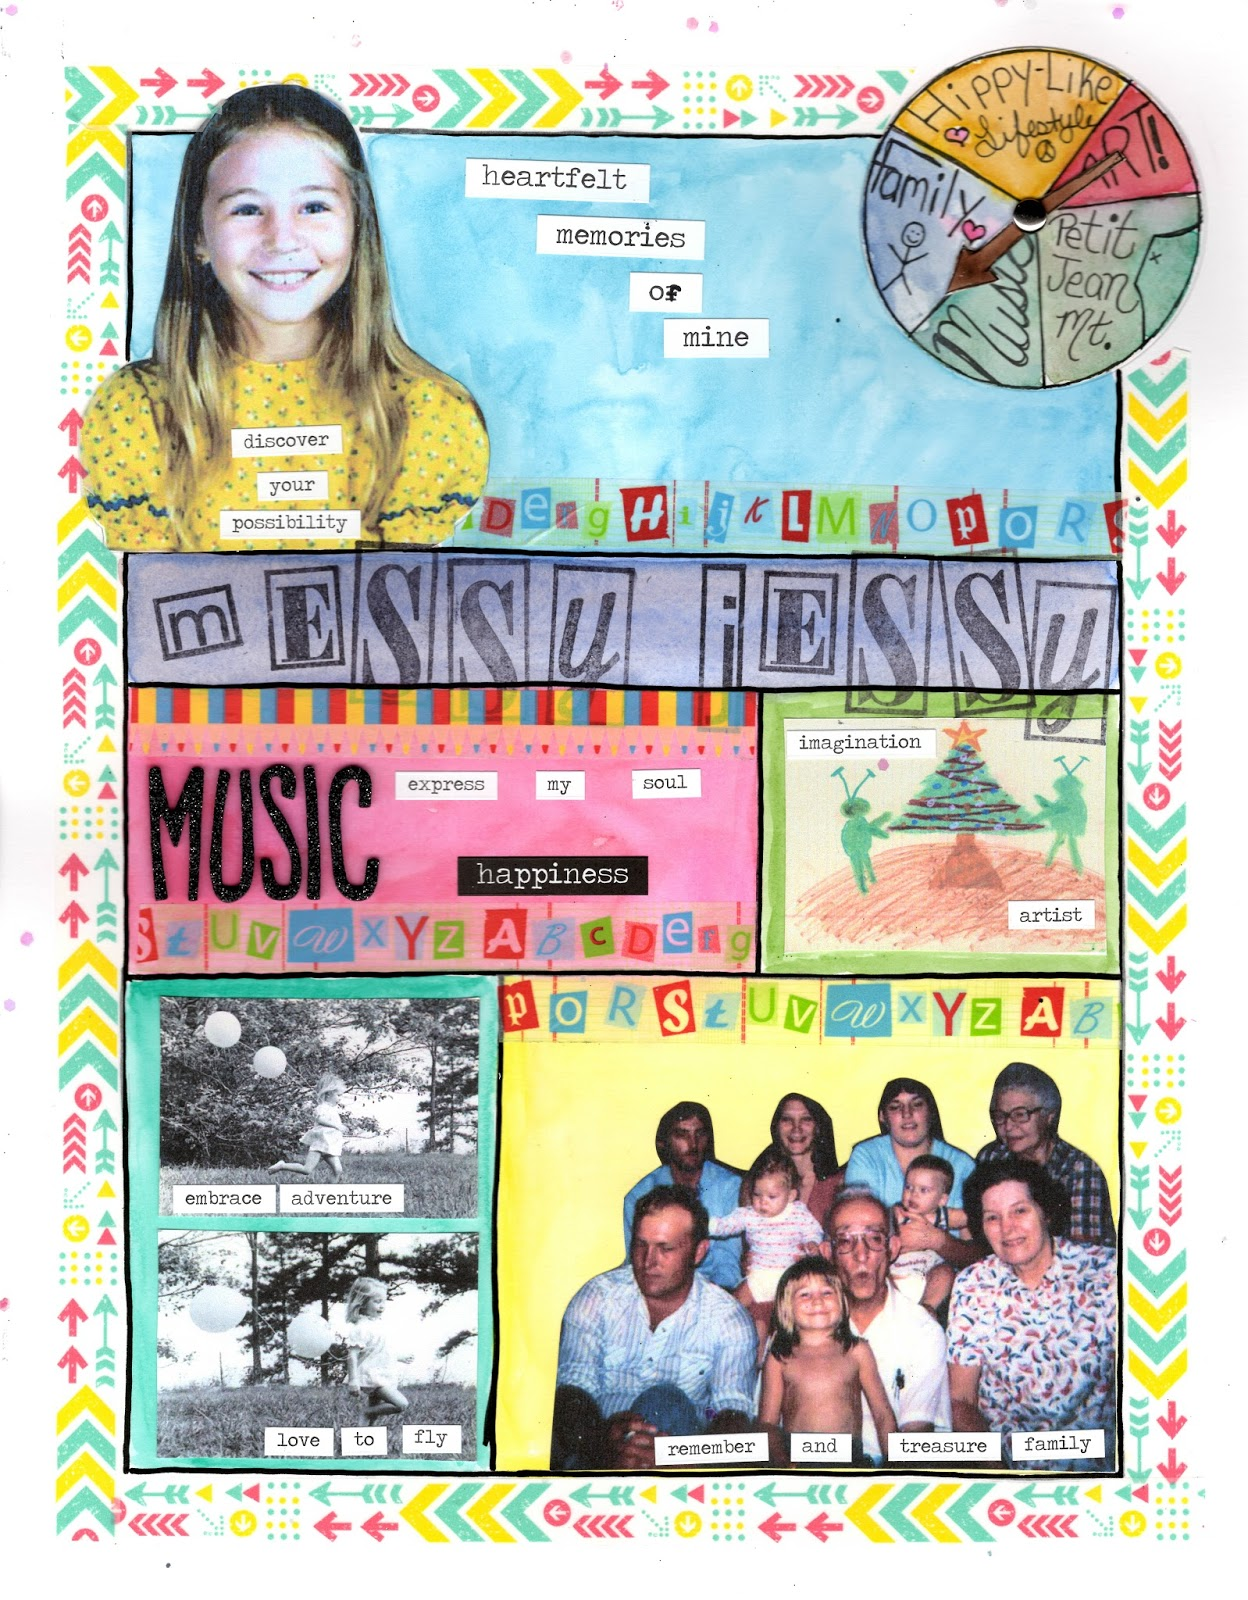 Messyjessycreatesart lifebook 2015 week 46 with violette for Whats news laporte